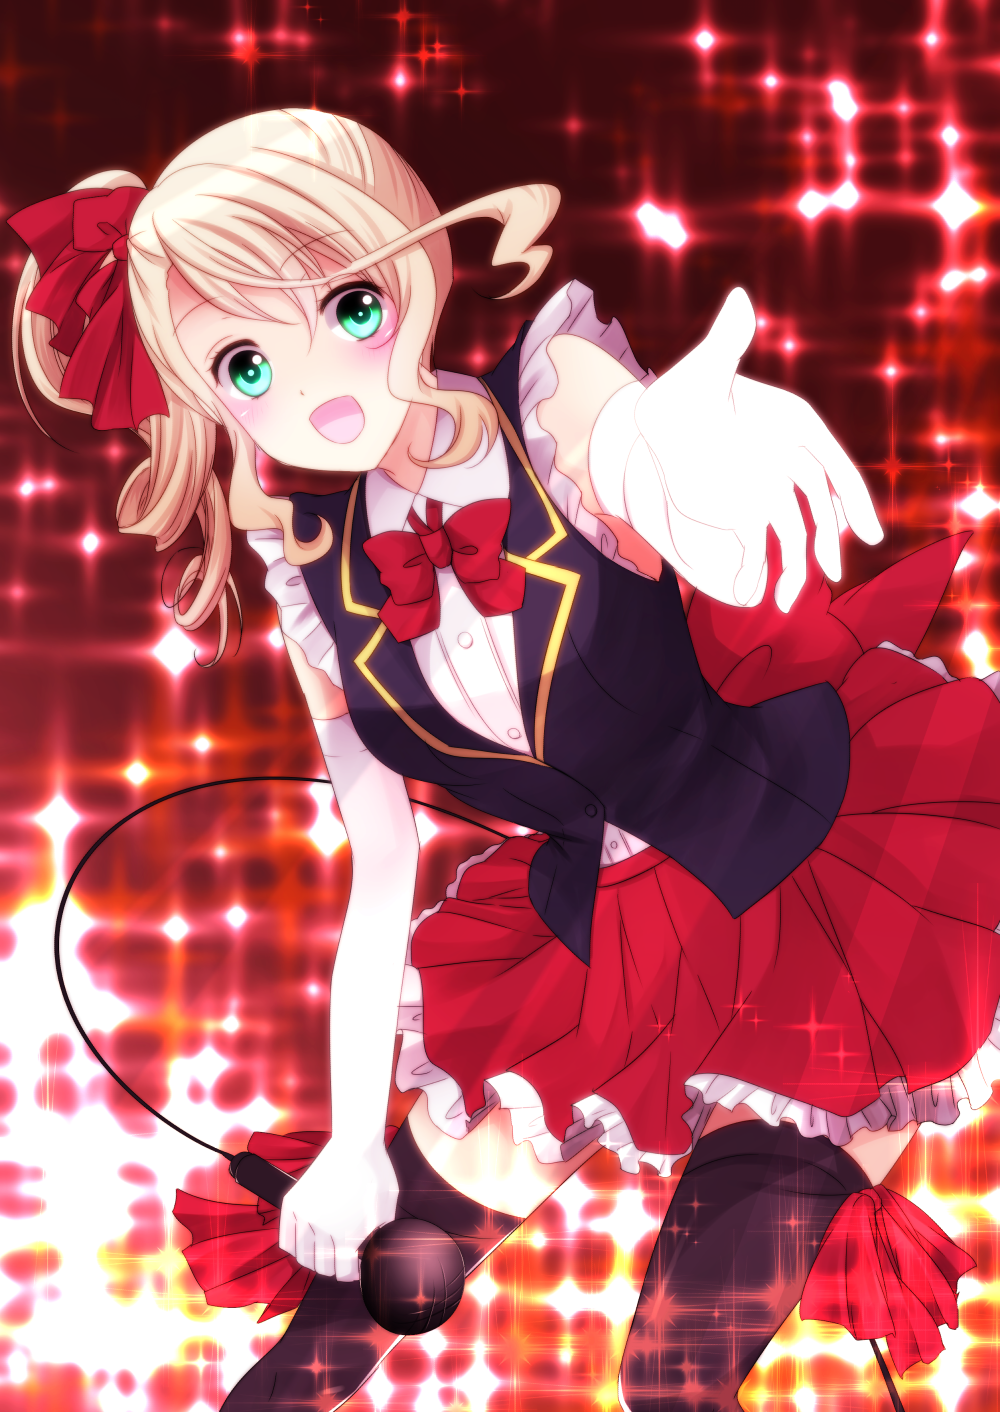 1girl :d alisha_diphda black_legwear blonde_hair bow bowtie dress_shirt eyebrows_visible_through_hair green_eyes hair_between_eyes highres holding holding_microphone leaning_forward long_hair looking_at_viewer microphone miniskirt open_mouth outstretched_arm pleated_skirt red_bow red_neckwear red_skirt sakuno_ririsu shirt side_ponytail skirt sleeveless sleeveless_shirt smile solo standing tales_of_(series) tales_of_zestiria thigh-highs white_shirt zettai_ryouiki